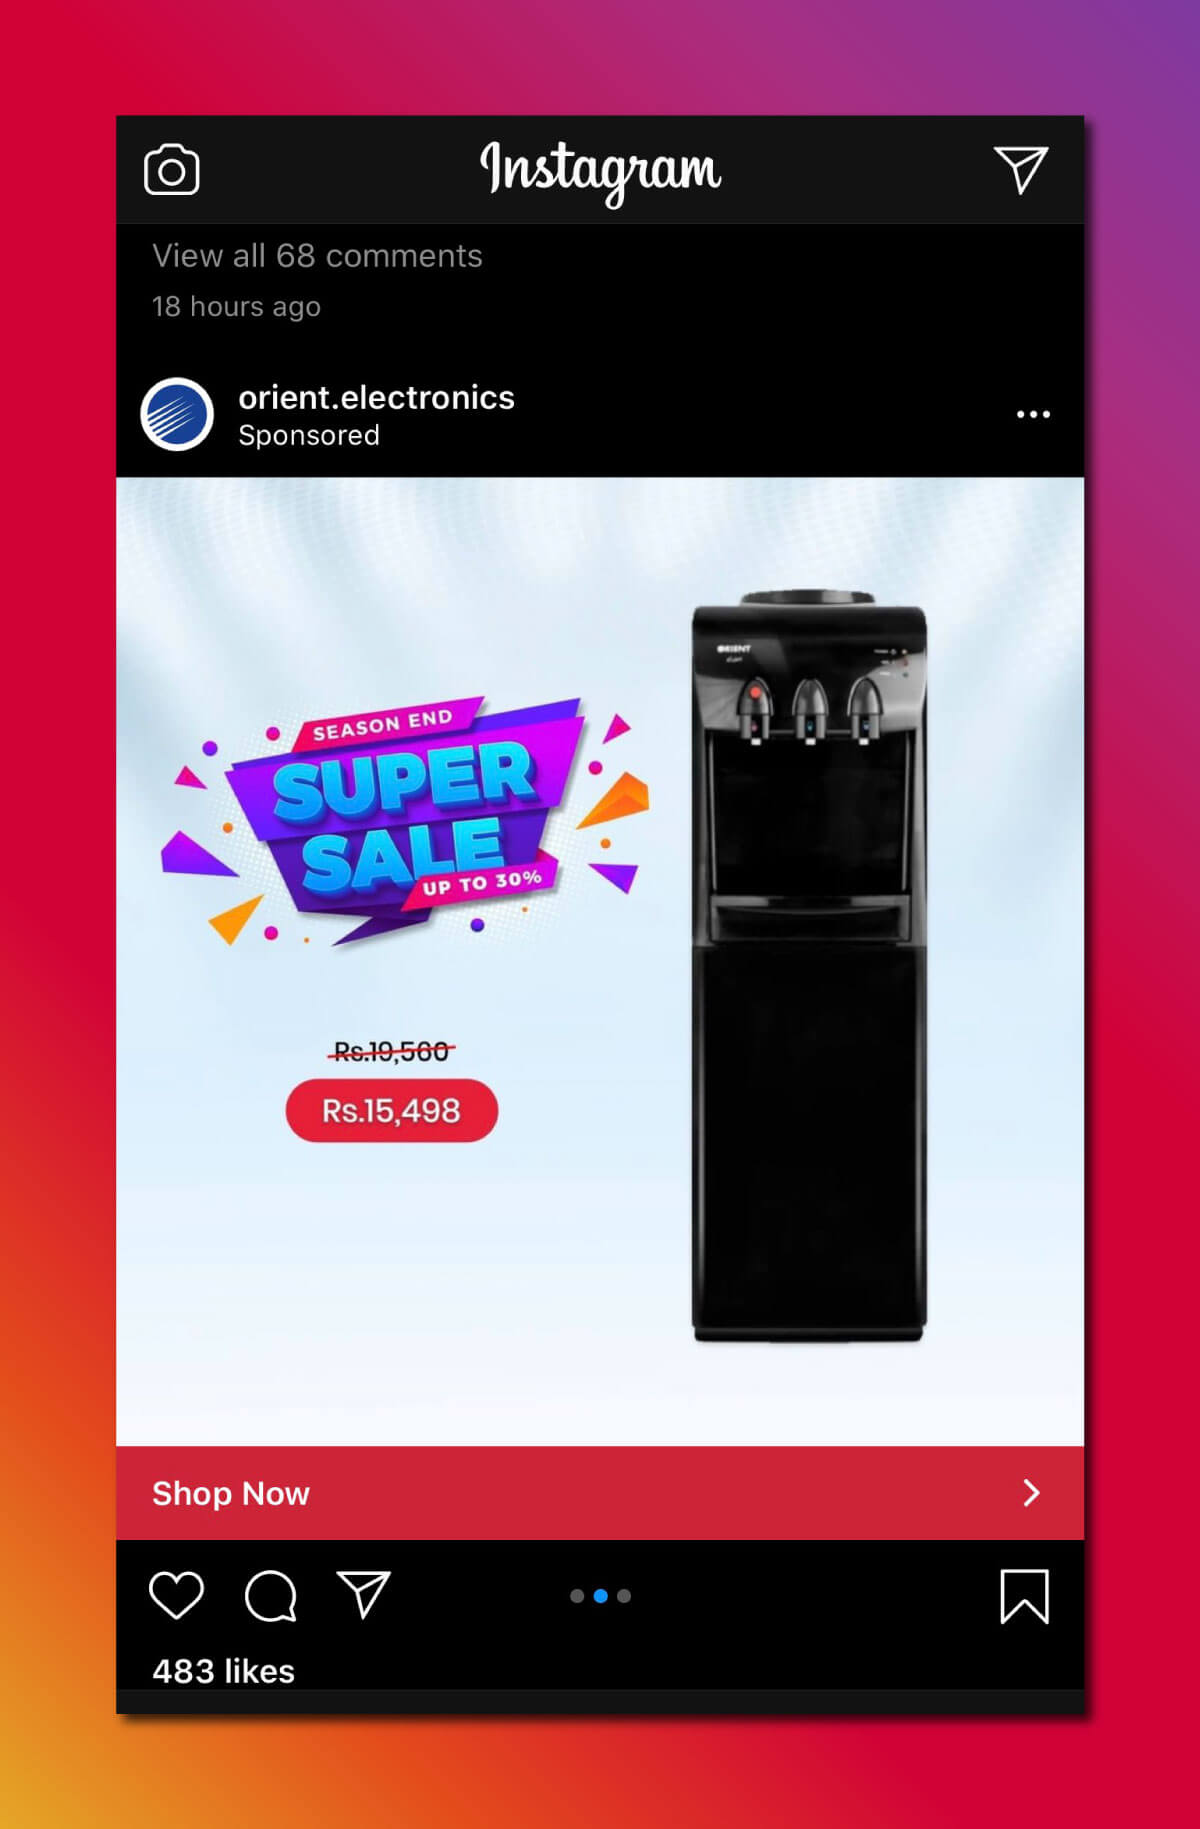 Instagram Marketing Strategy - Sponsored Ads